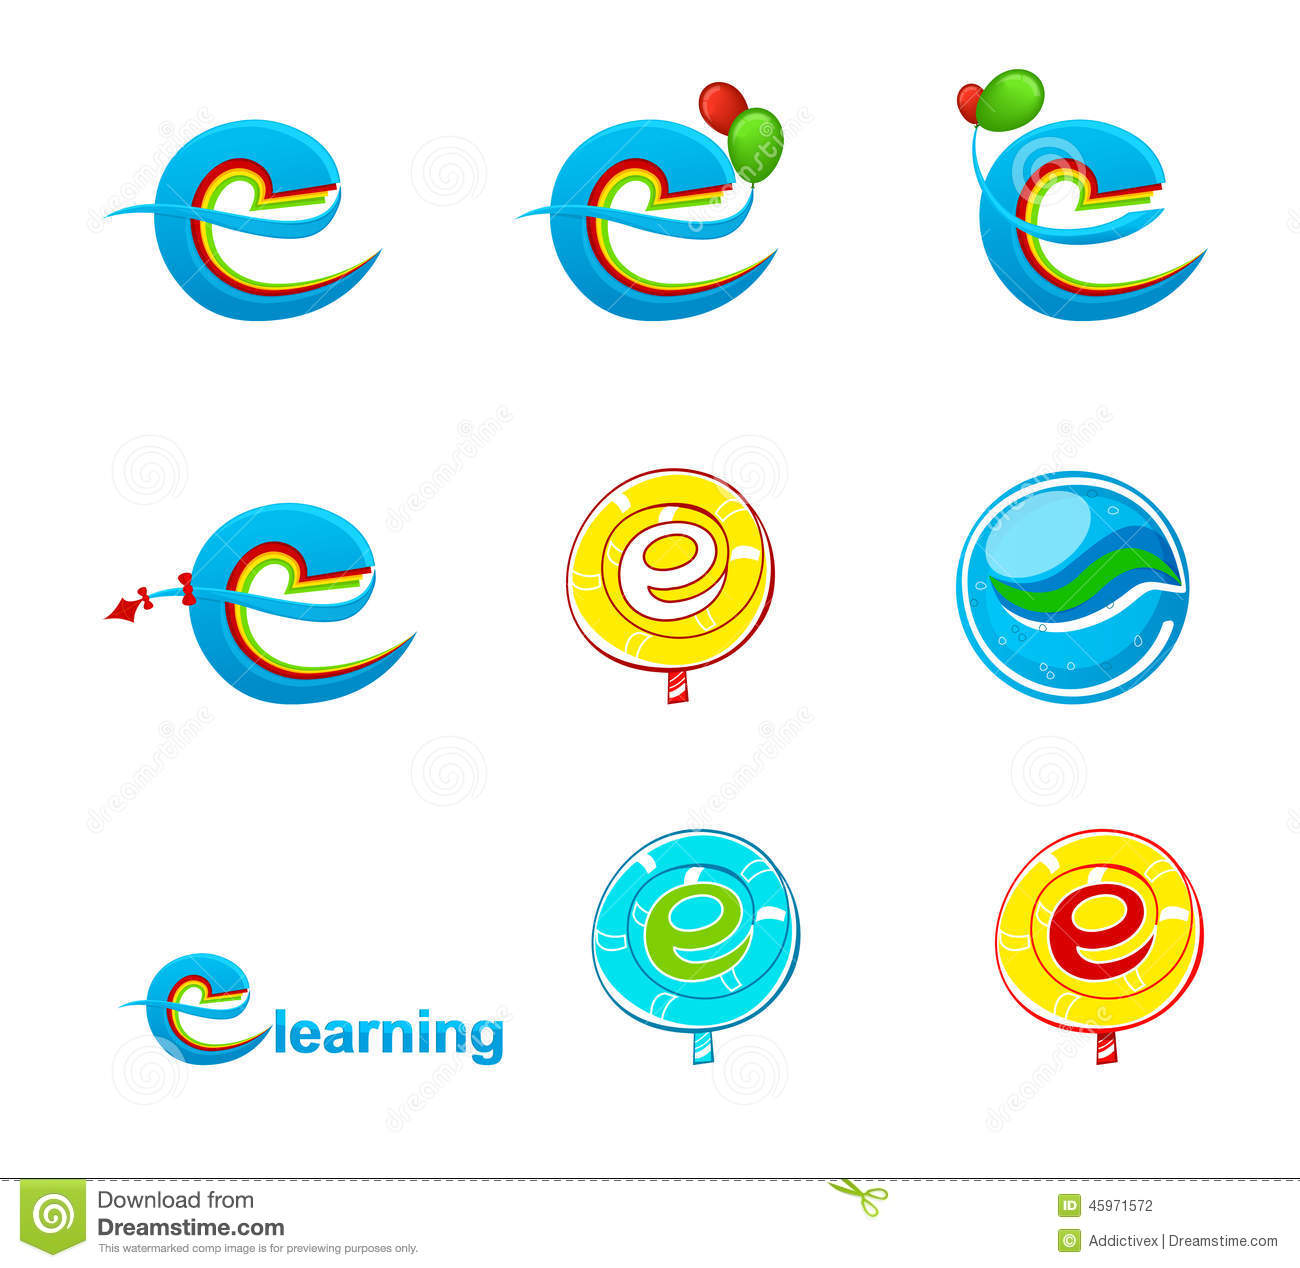 Logo de l explorateur logo/E-learning